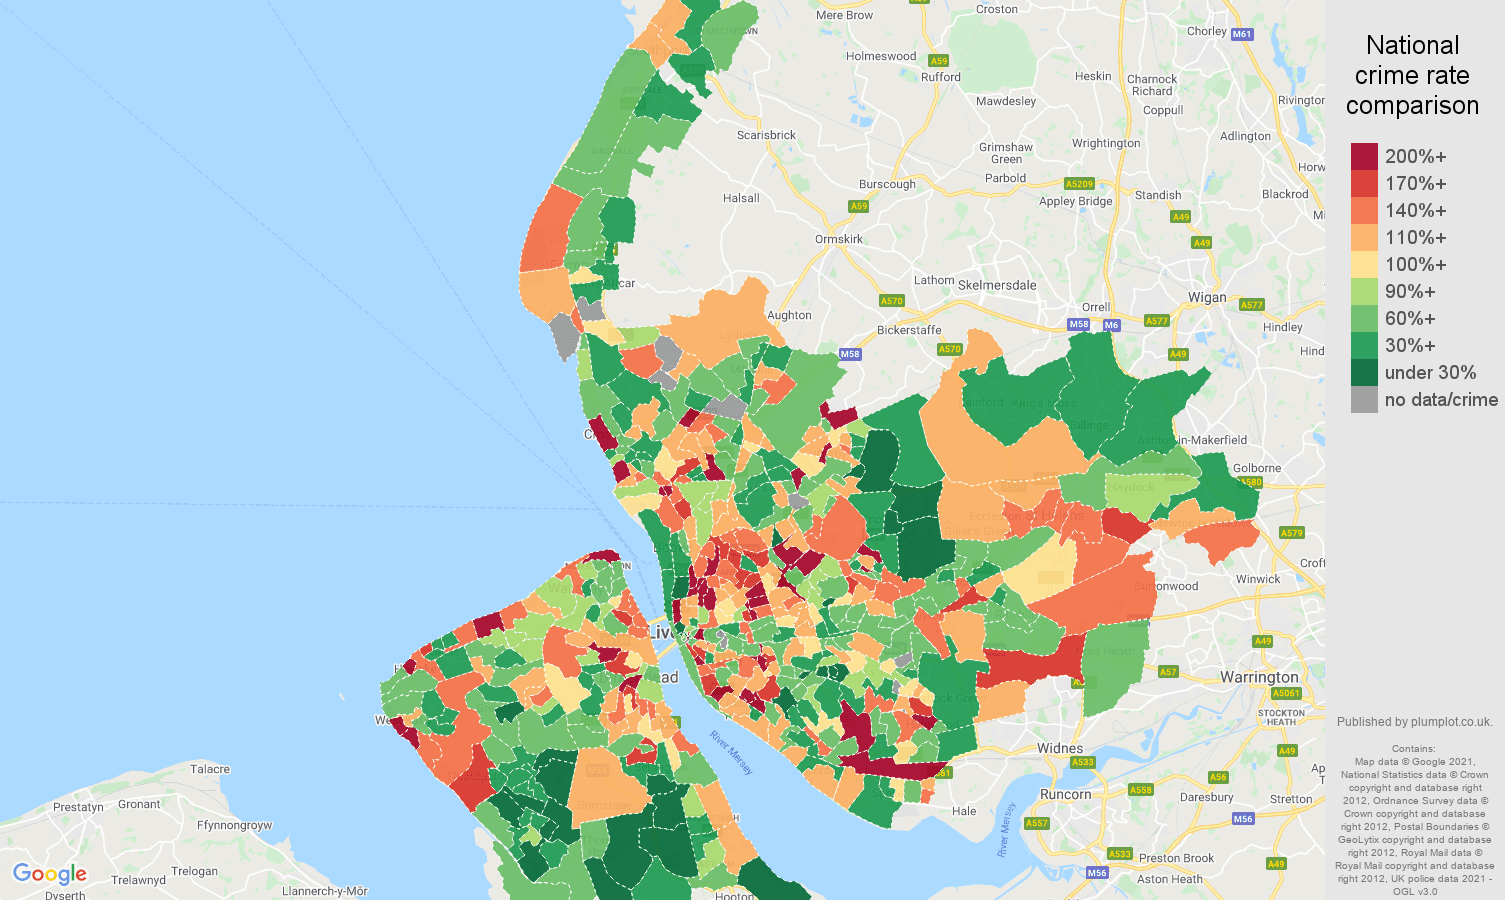 Merseyside antisocial behaviour crime rate comparison map